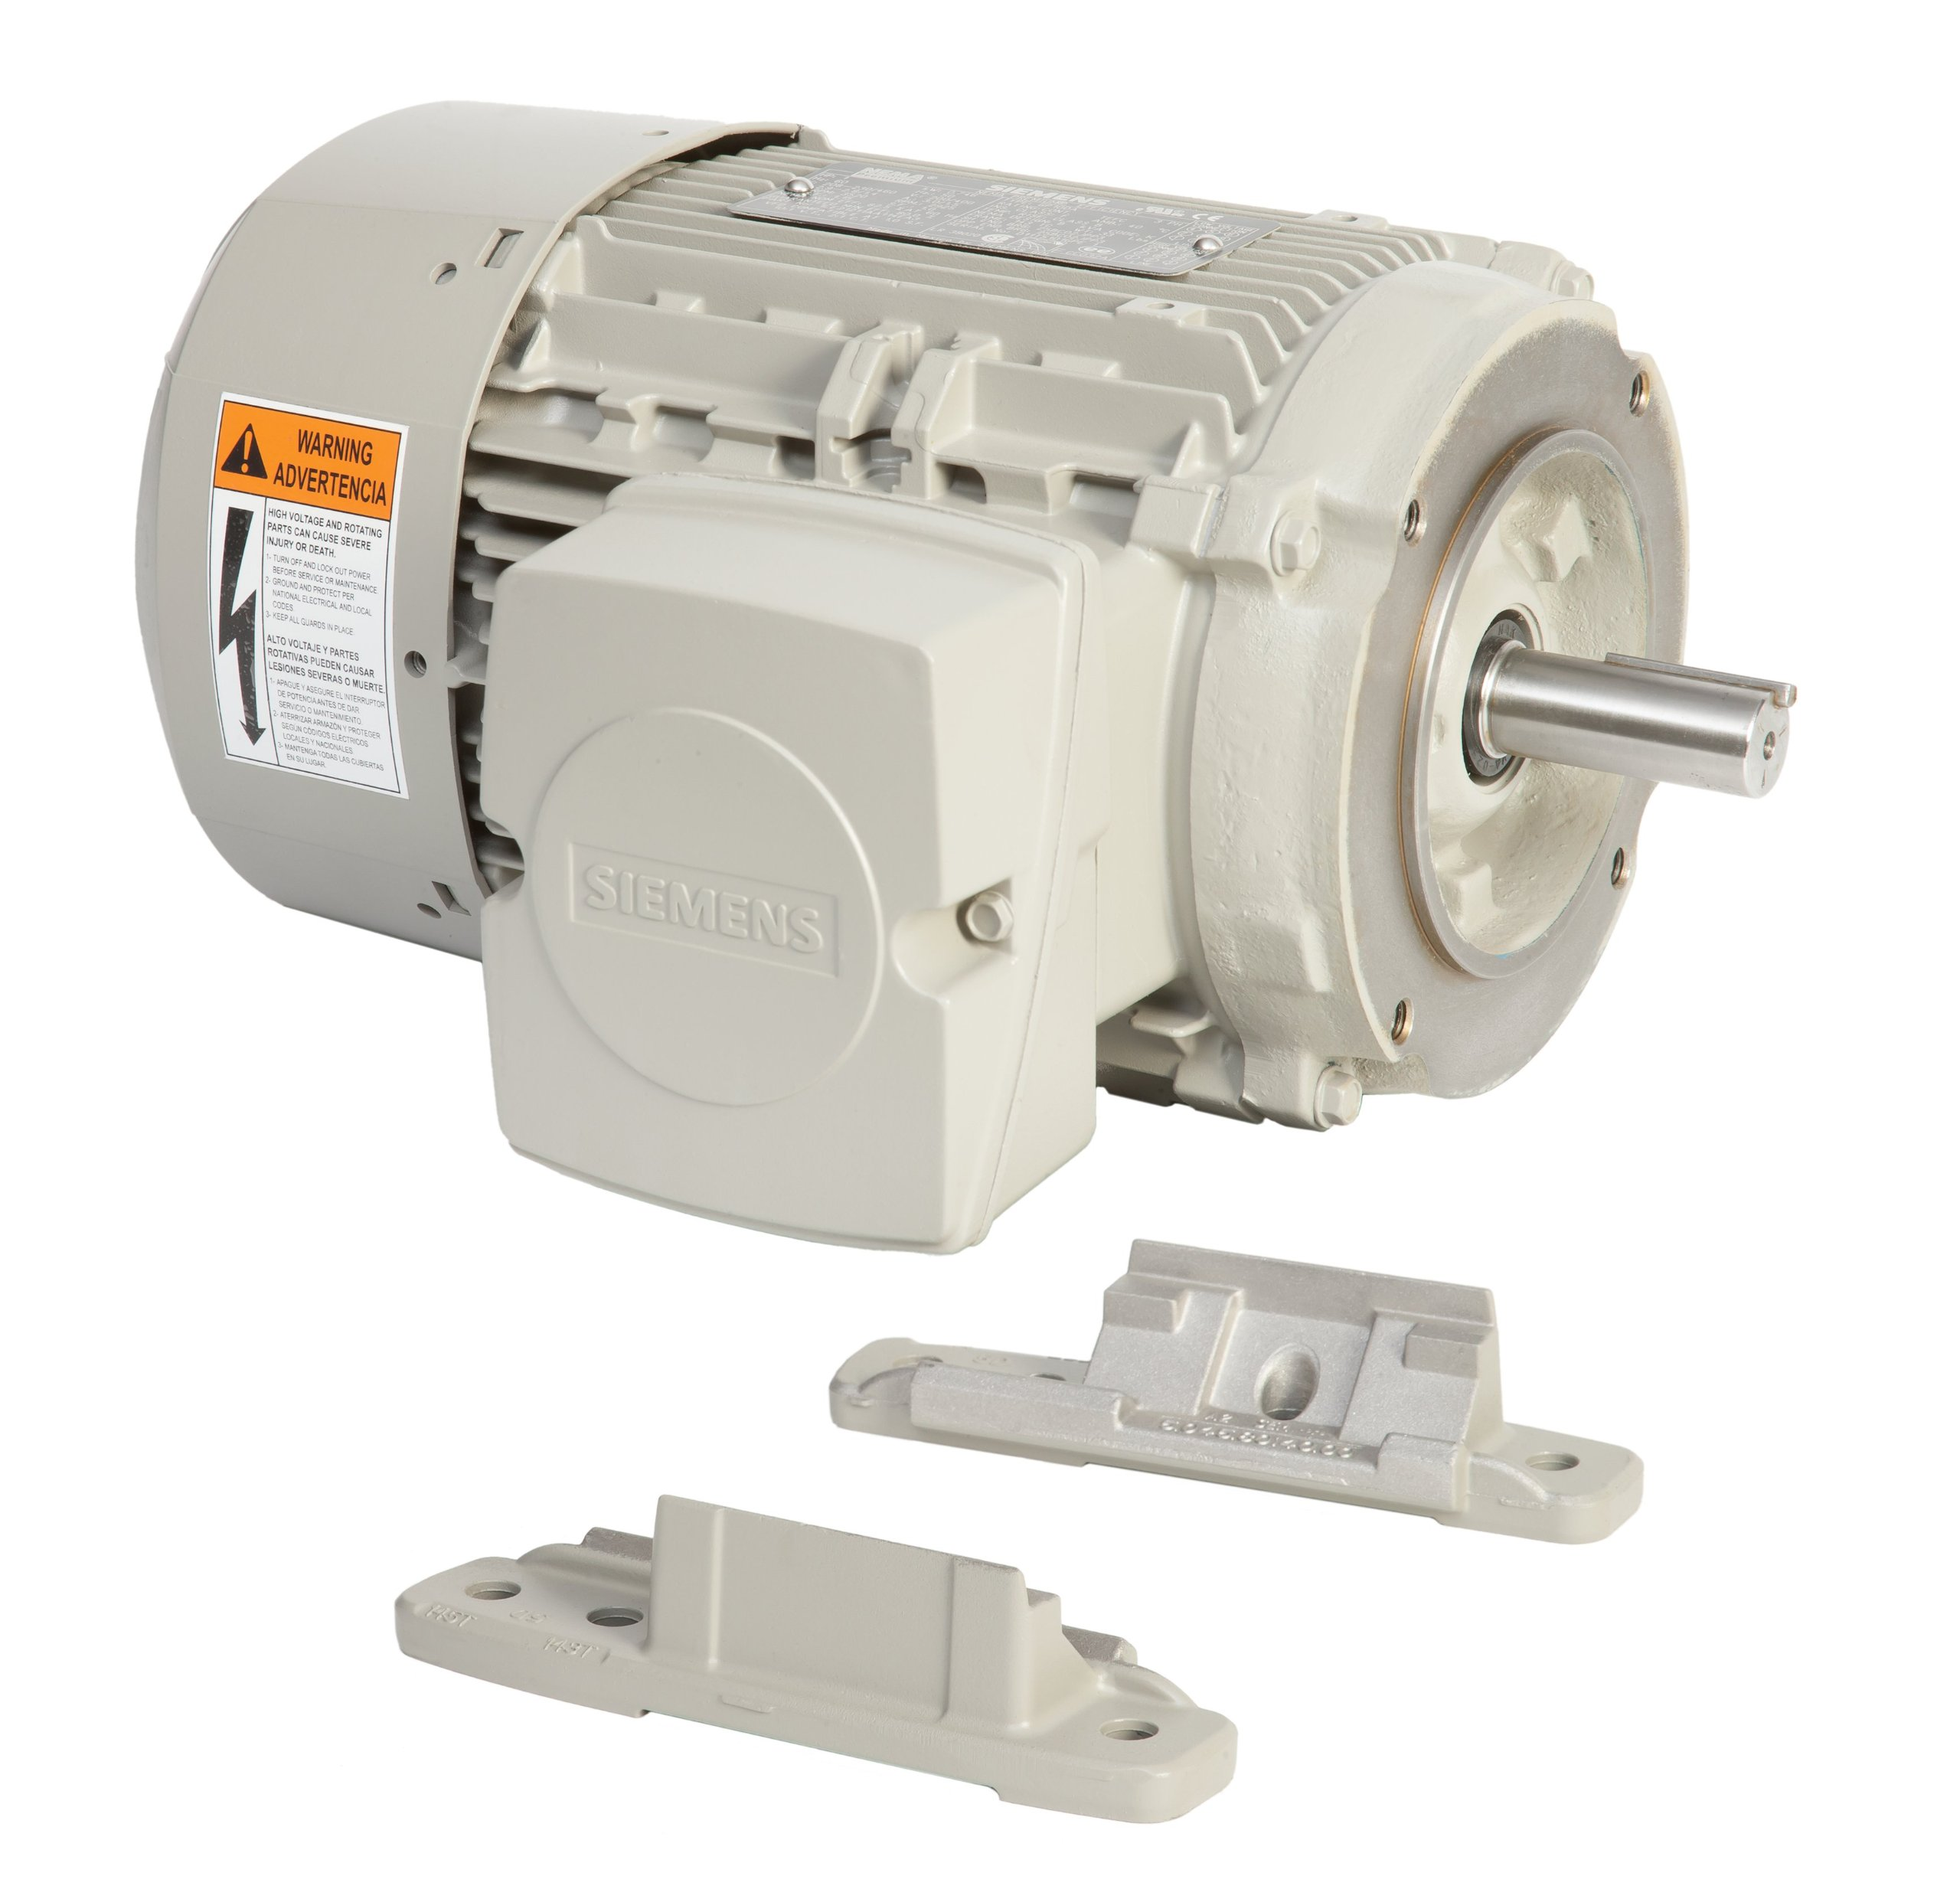 Siemens 1LE21212BA214EA3 20-HP 3600 Rpm 208 230/460-volt 256tc General Purpose Electric Motor Nema Premium Efficient Aluminum Frame, Aluminum Rotor by Siemens